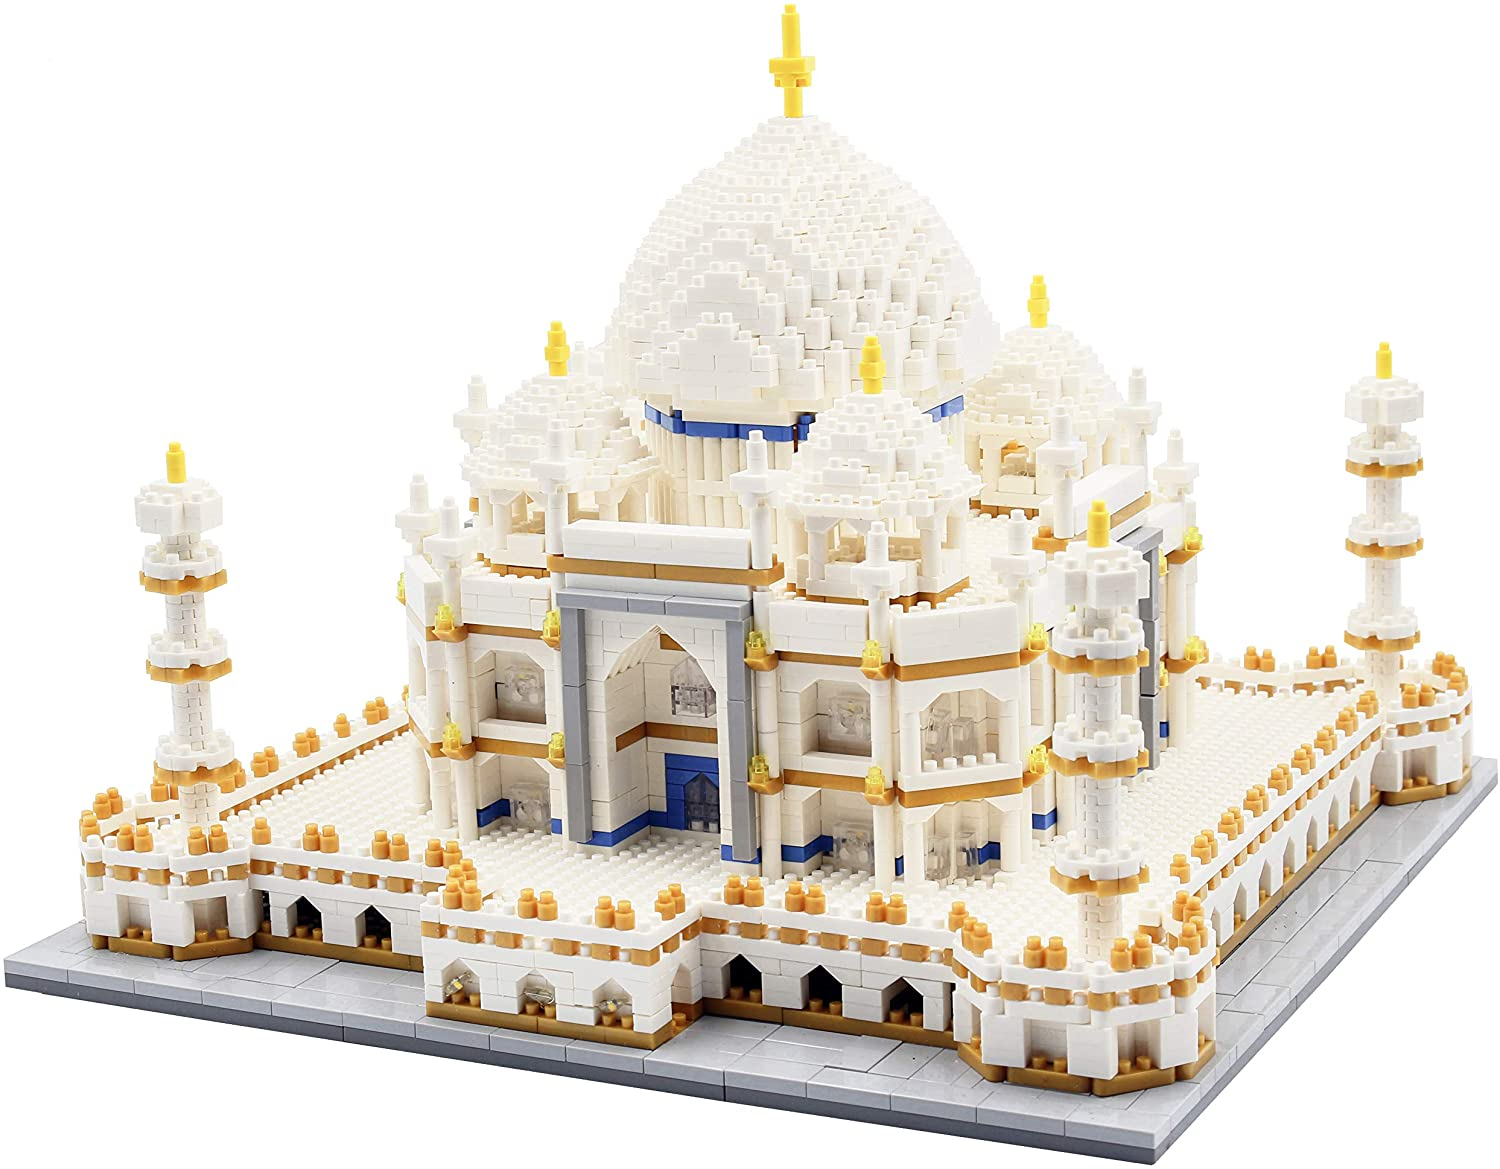 dOvOb Micro Mini Blocks Taj Mahal Building and Architecture Model Set,(4000Pieces) Toys Gifts for Kid and Adult